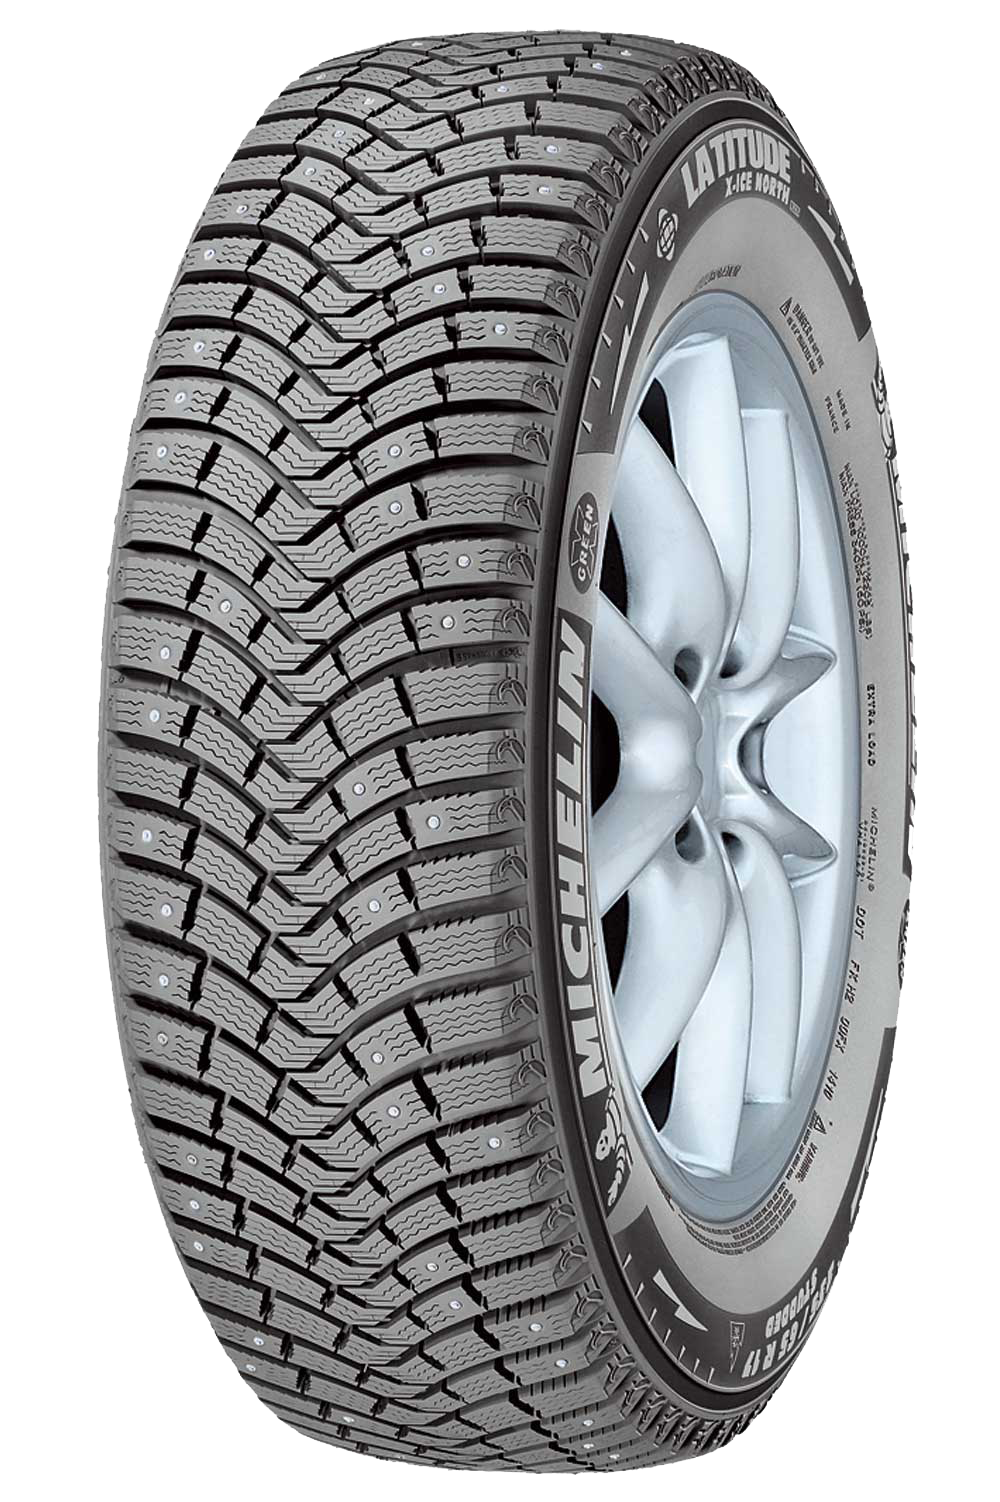 Зимняя шипованная шина Michelin Latitude X-Ice North XIN2 plus 285/65 R17 116T